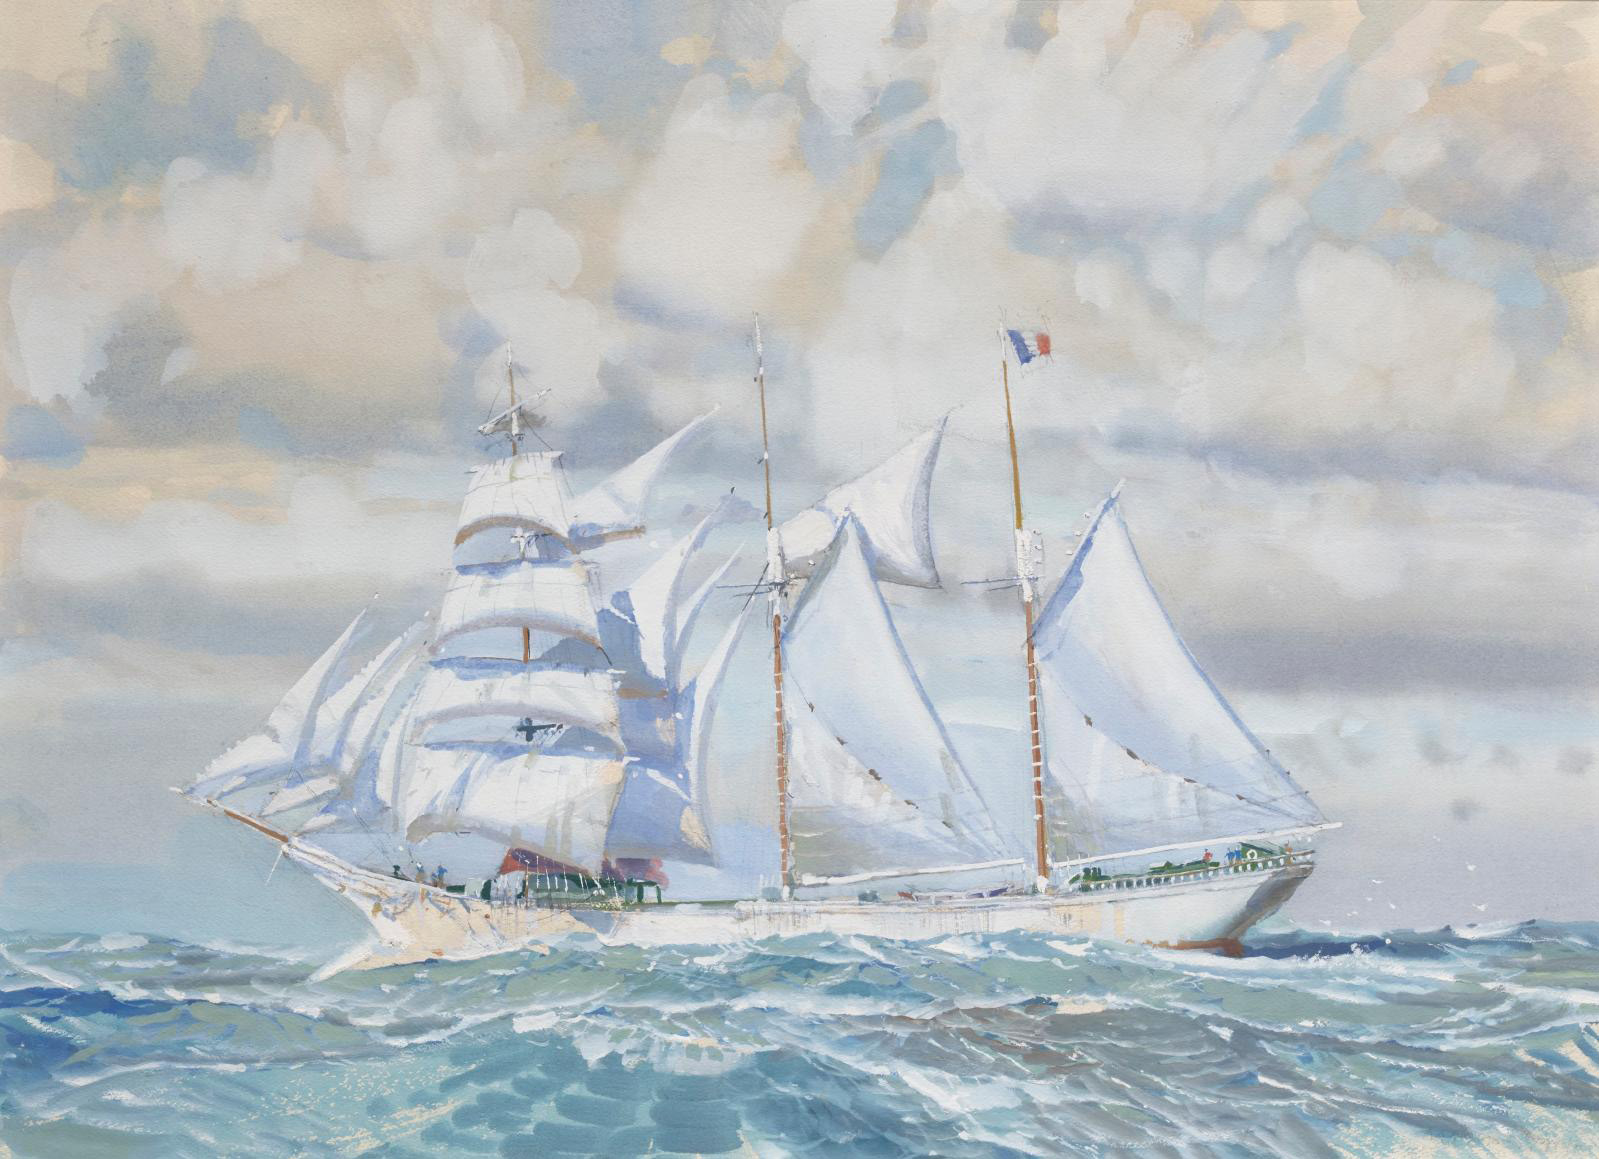 Marin-Marie (1901-1987), Trois-Mâts barque sur mer formée (Three-masted boat in heavy seas), watercolor with gouache, 52 x 72 cm/20.5 x 28